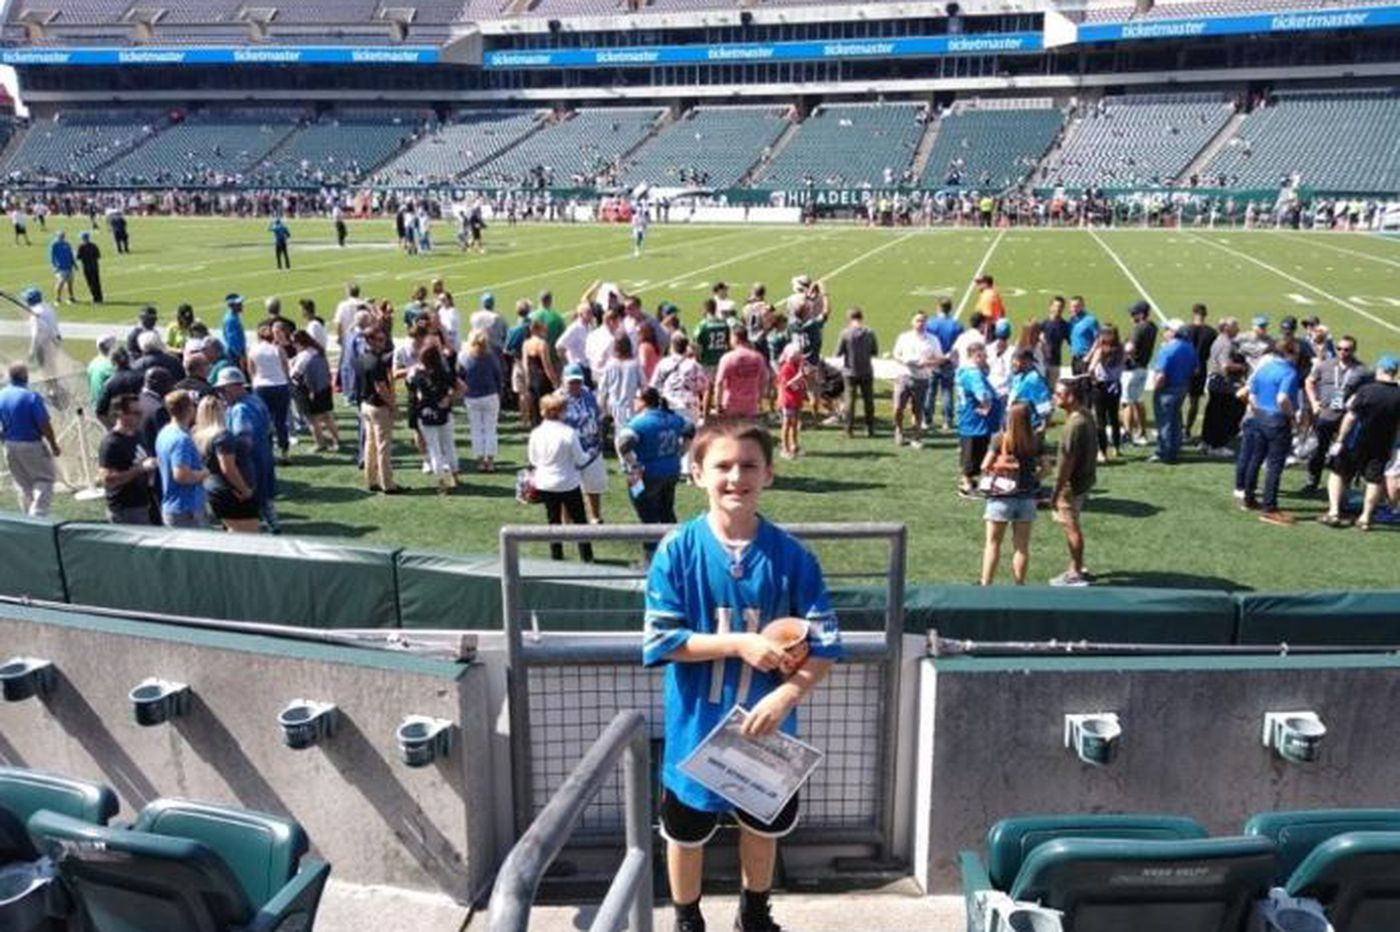 A Philly server got a $400 tip from a Detroit fan to buy her son Eagles-Lions tickets